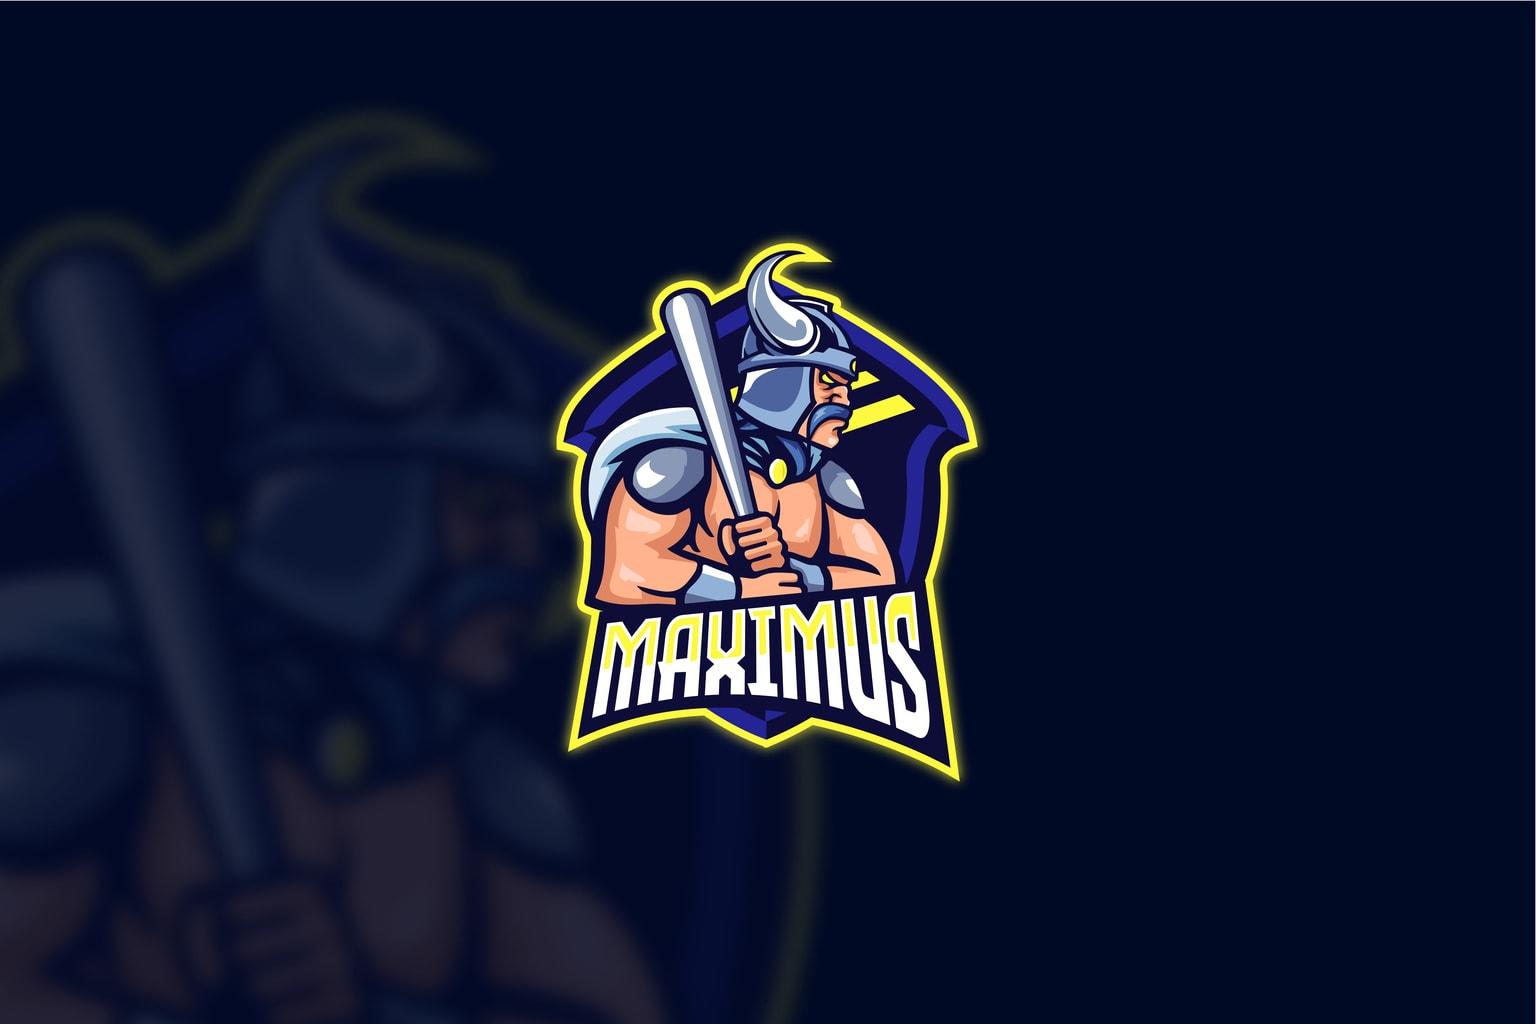 esport logo the maximus